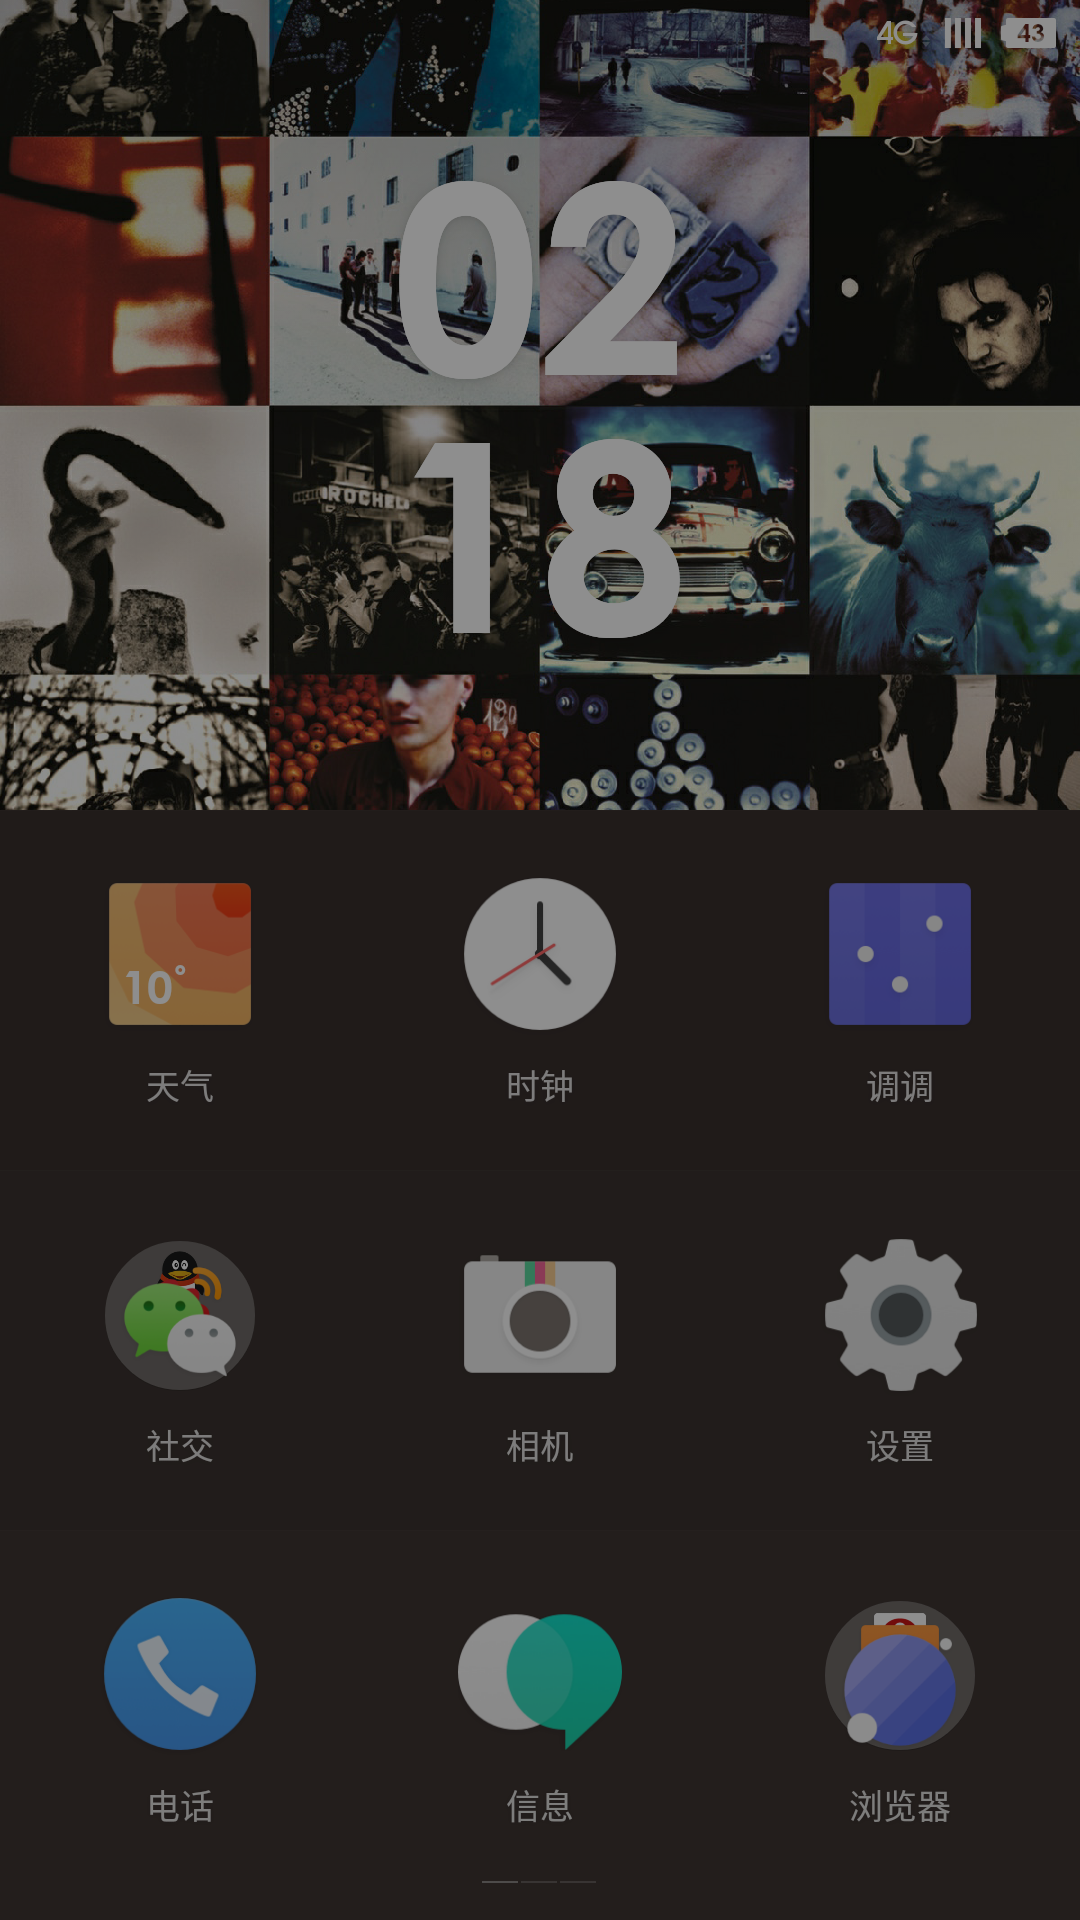 Screenshot_2015-11-03-02-18-32.png